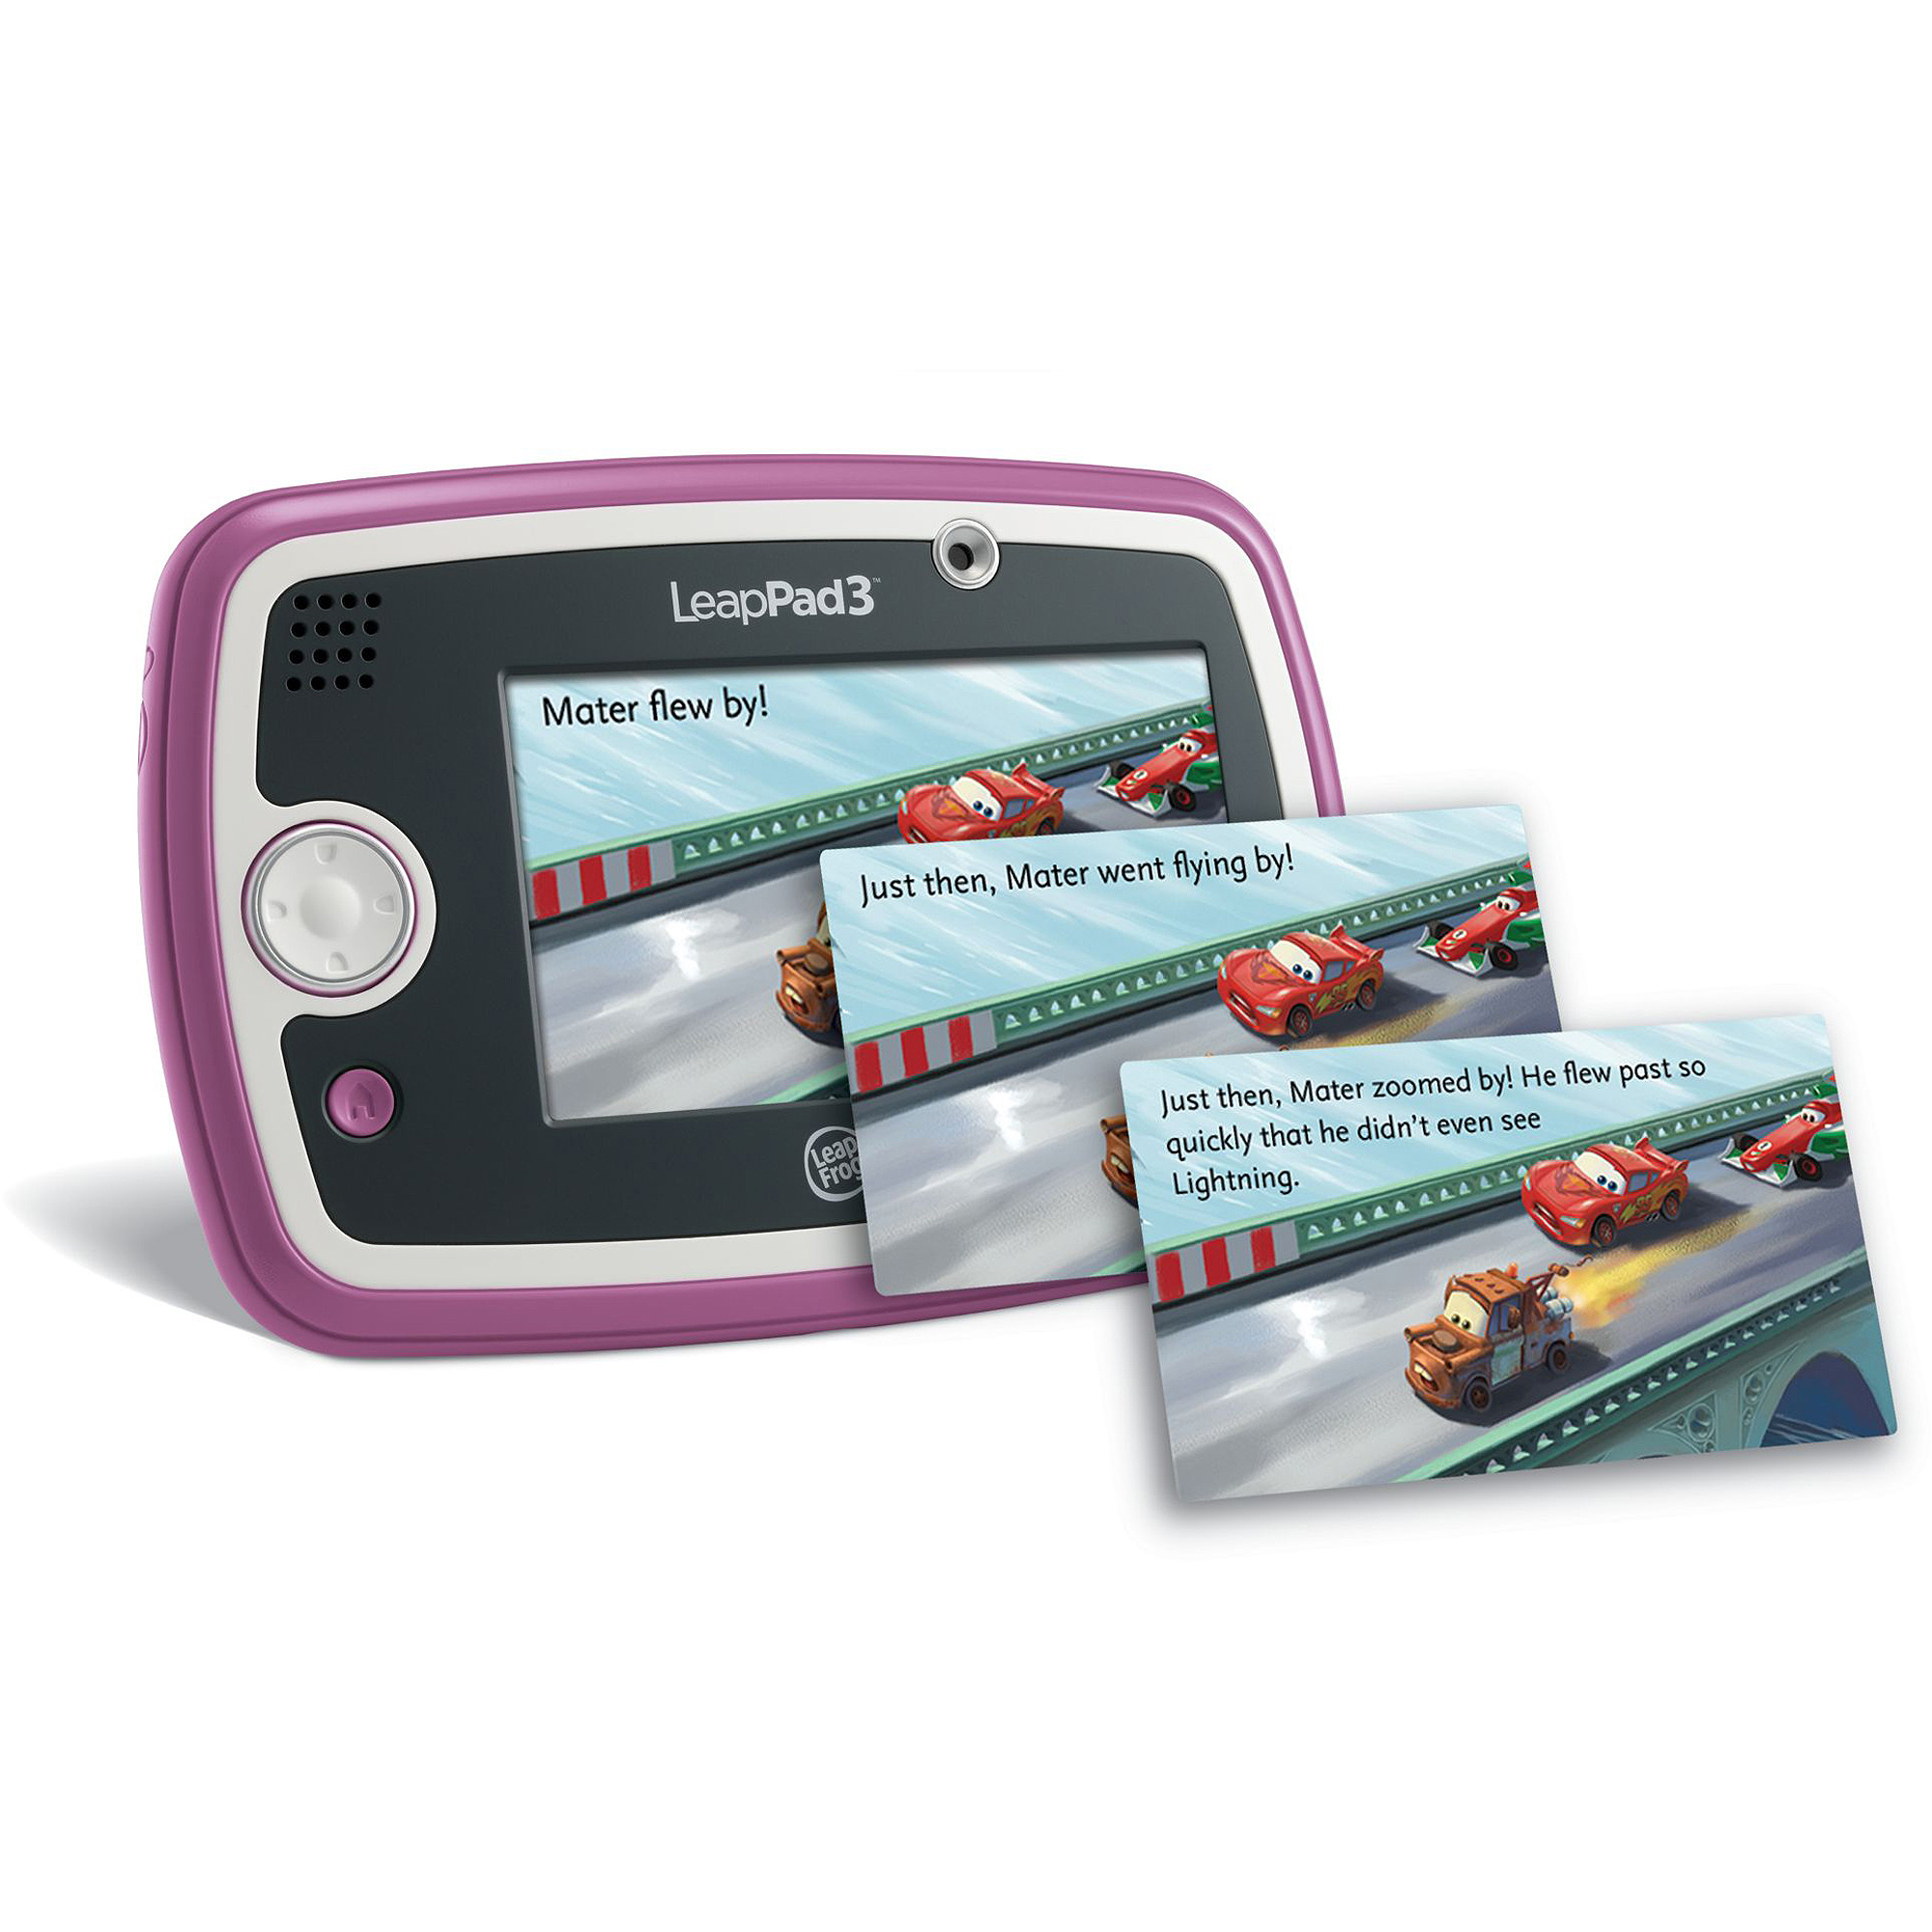 Walmart card offer prescreen - Leapfrog Leappad3 Kids Learning Tablet With Wi Fi Green Or Pink Walmart Com